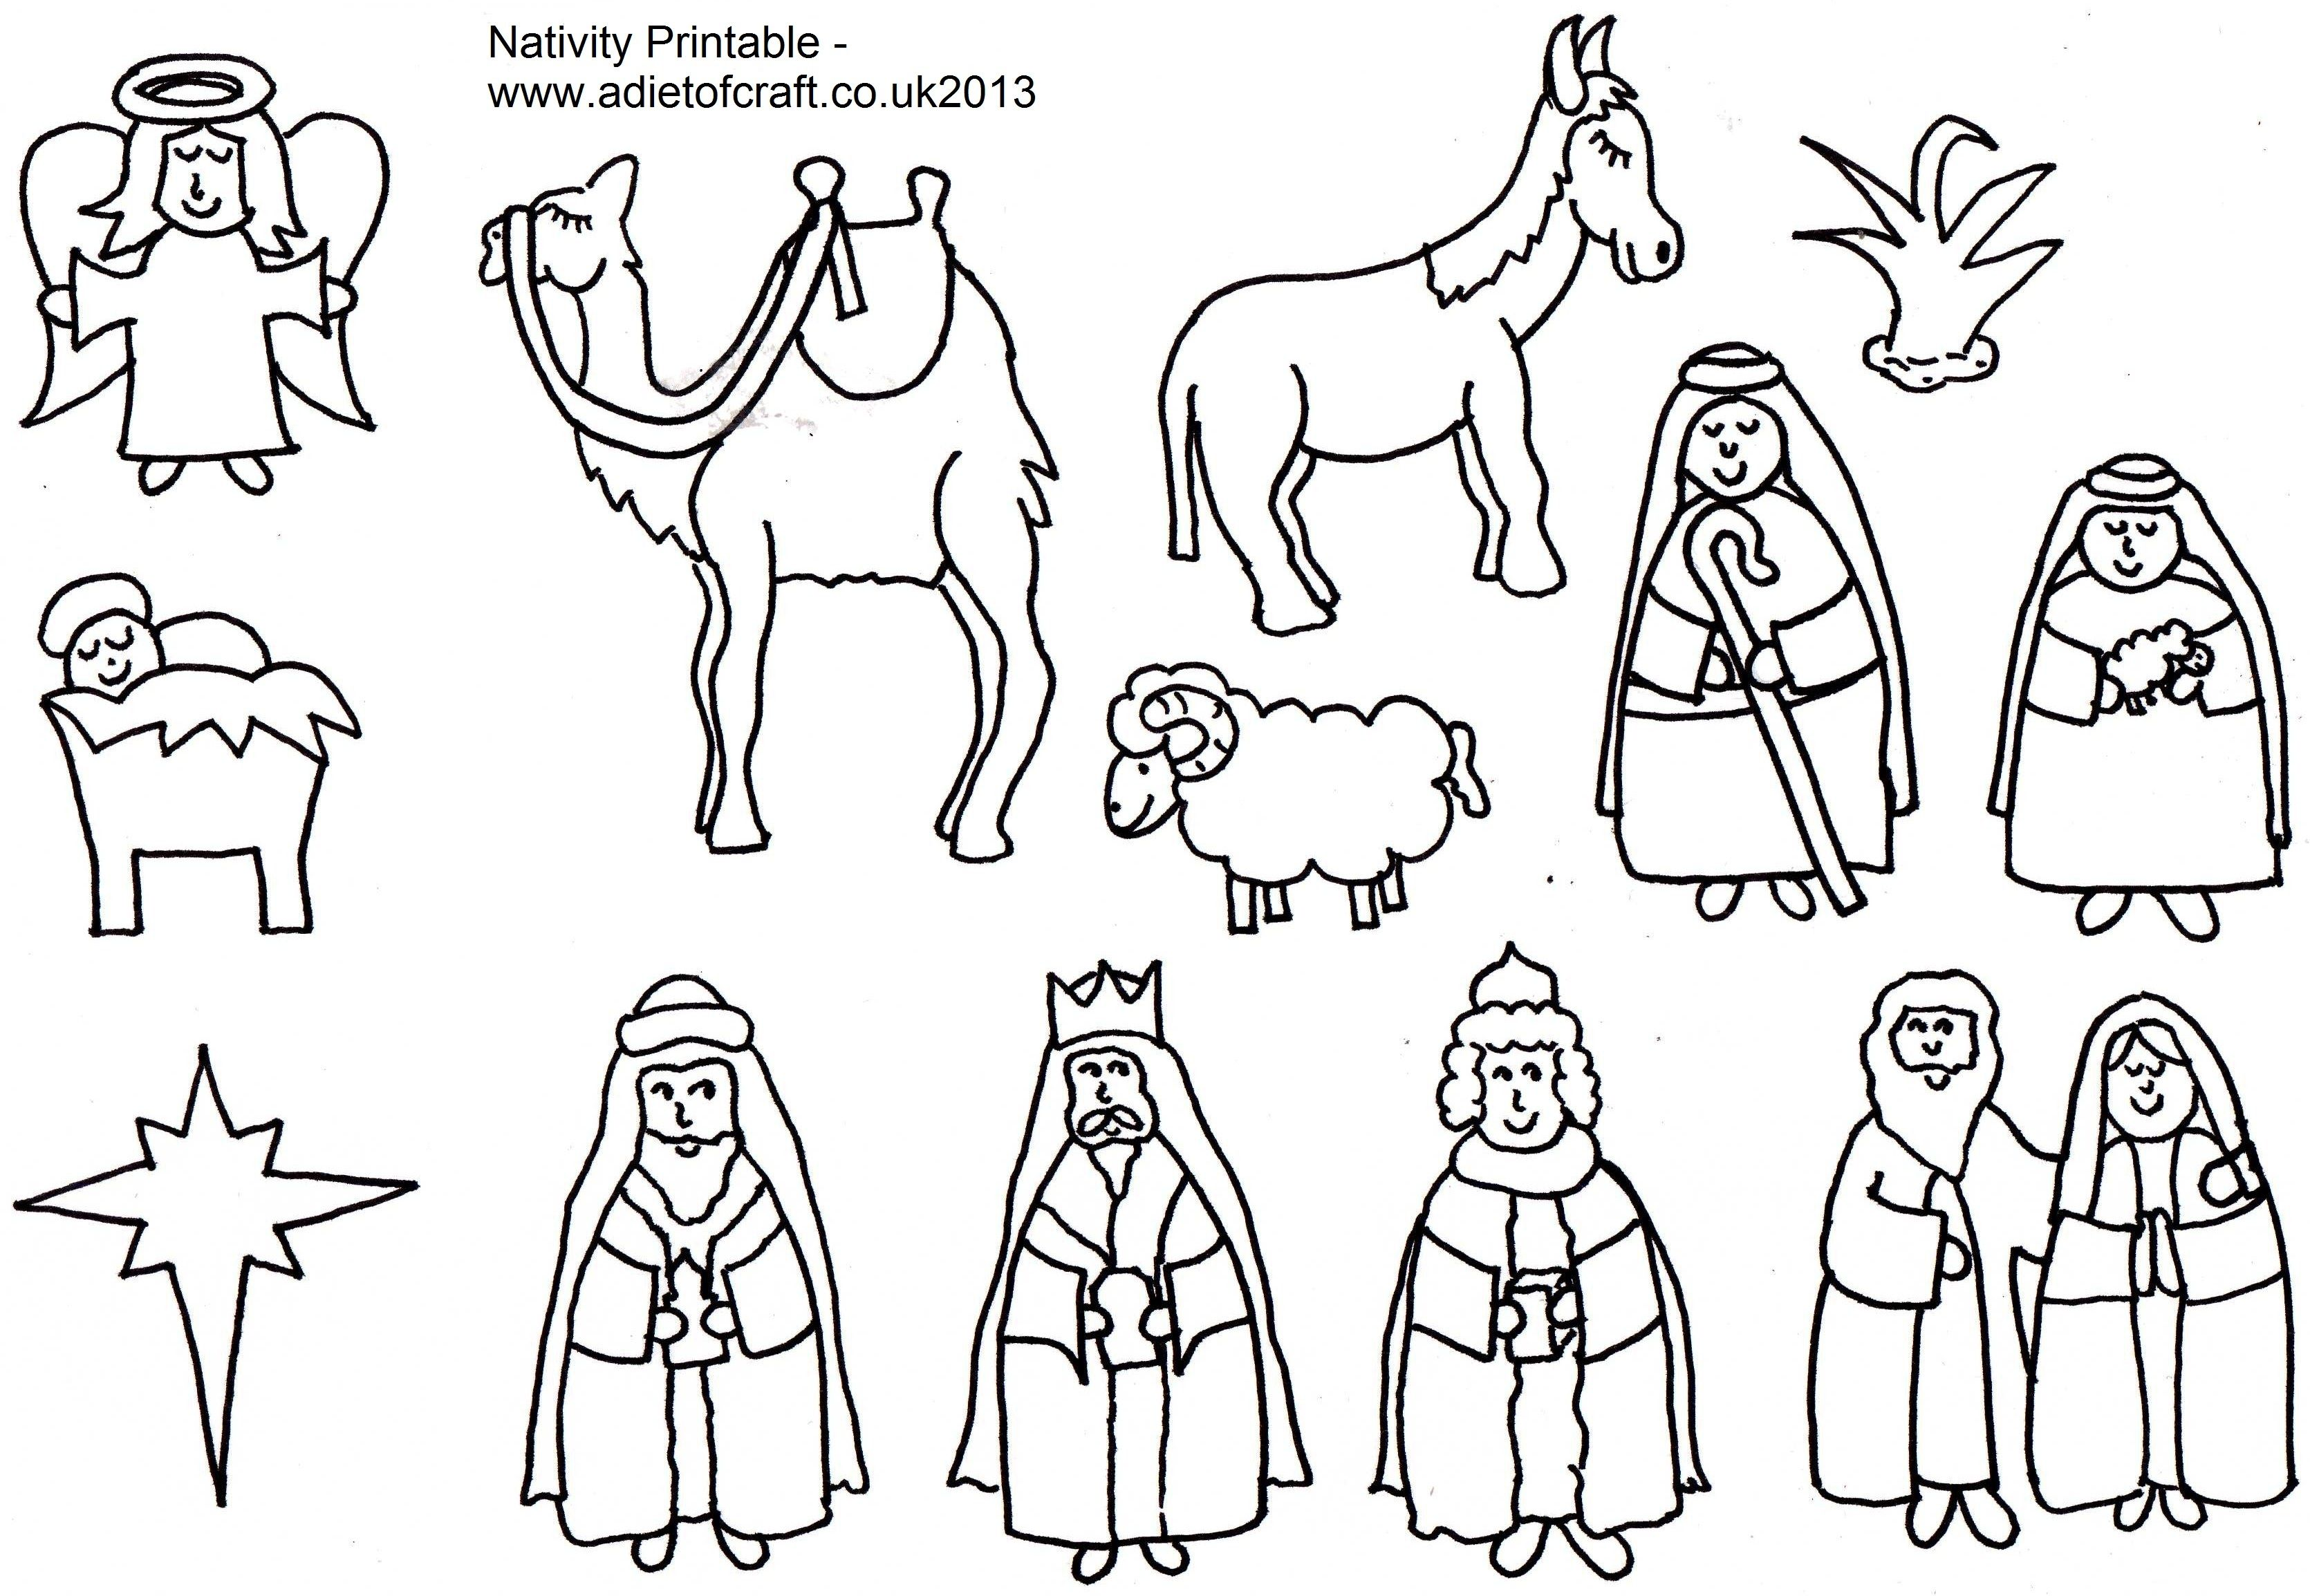 Adult Coloring Pages Of The Nativity Free In Nativity